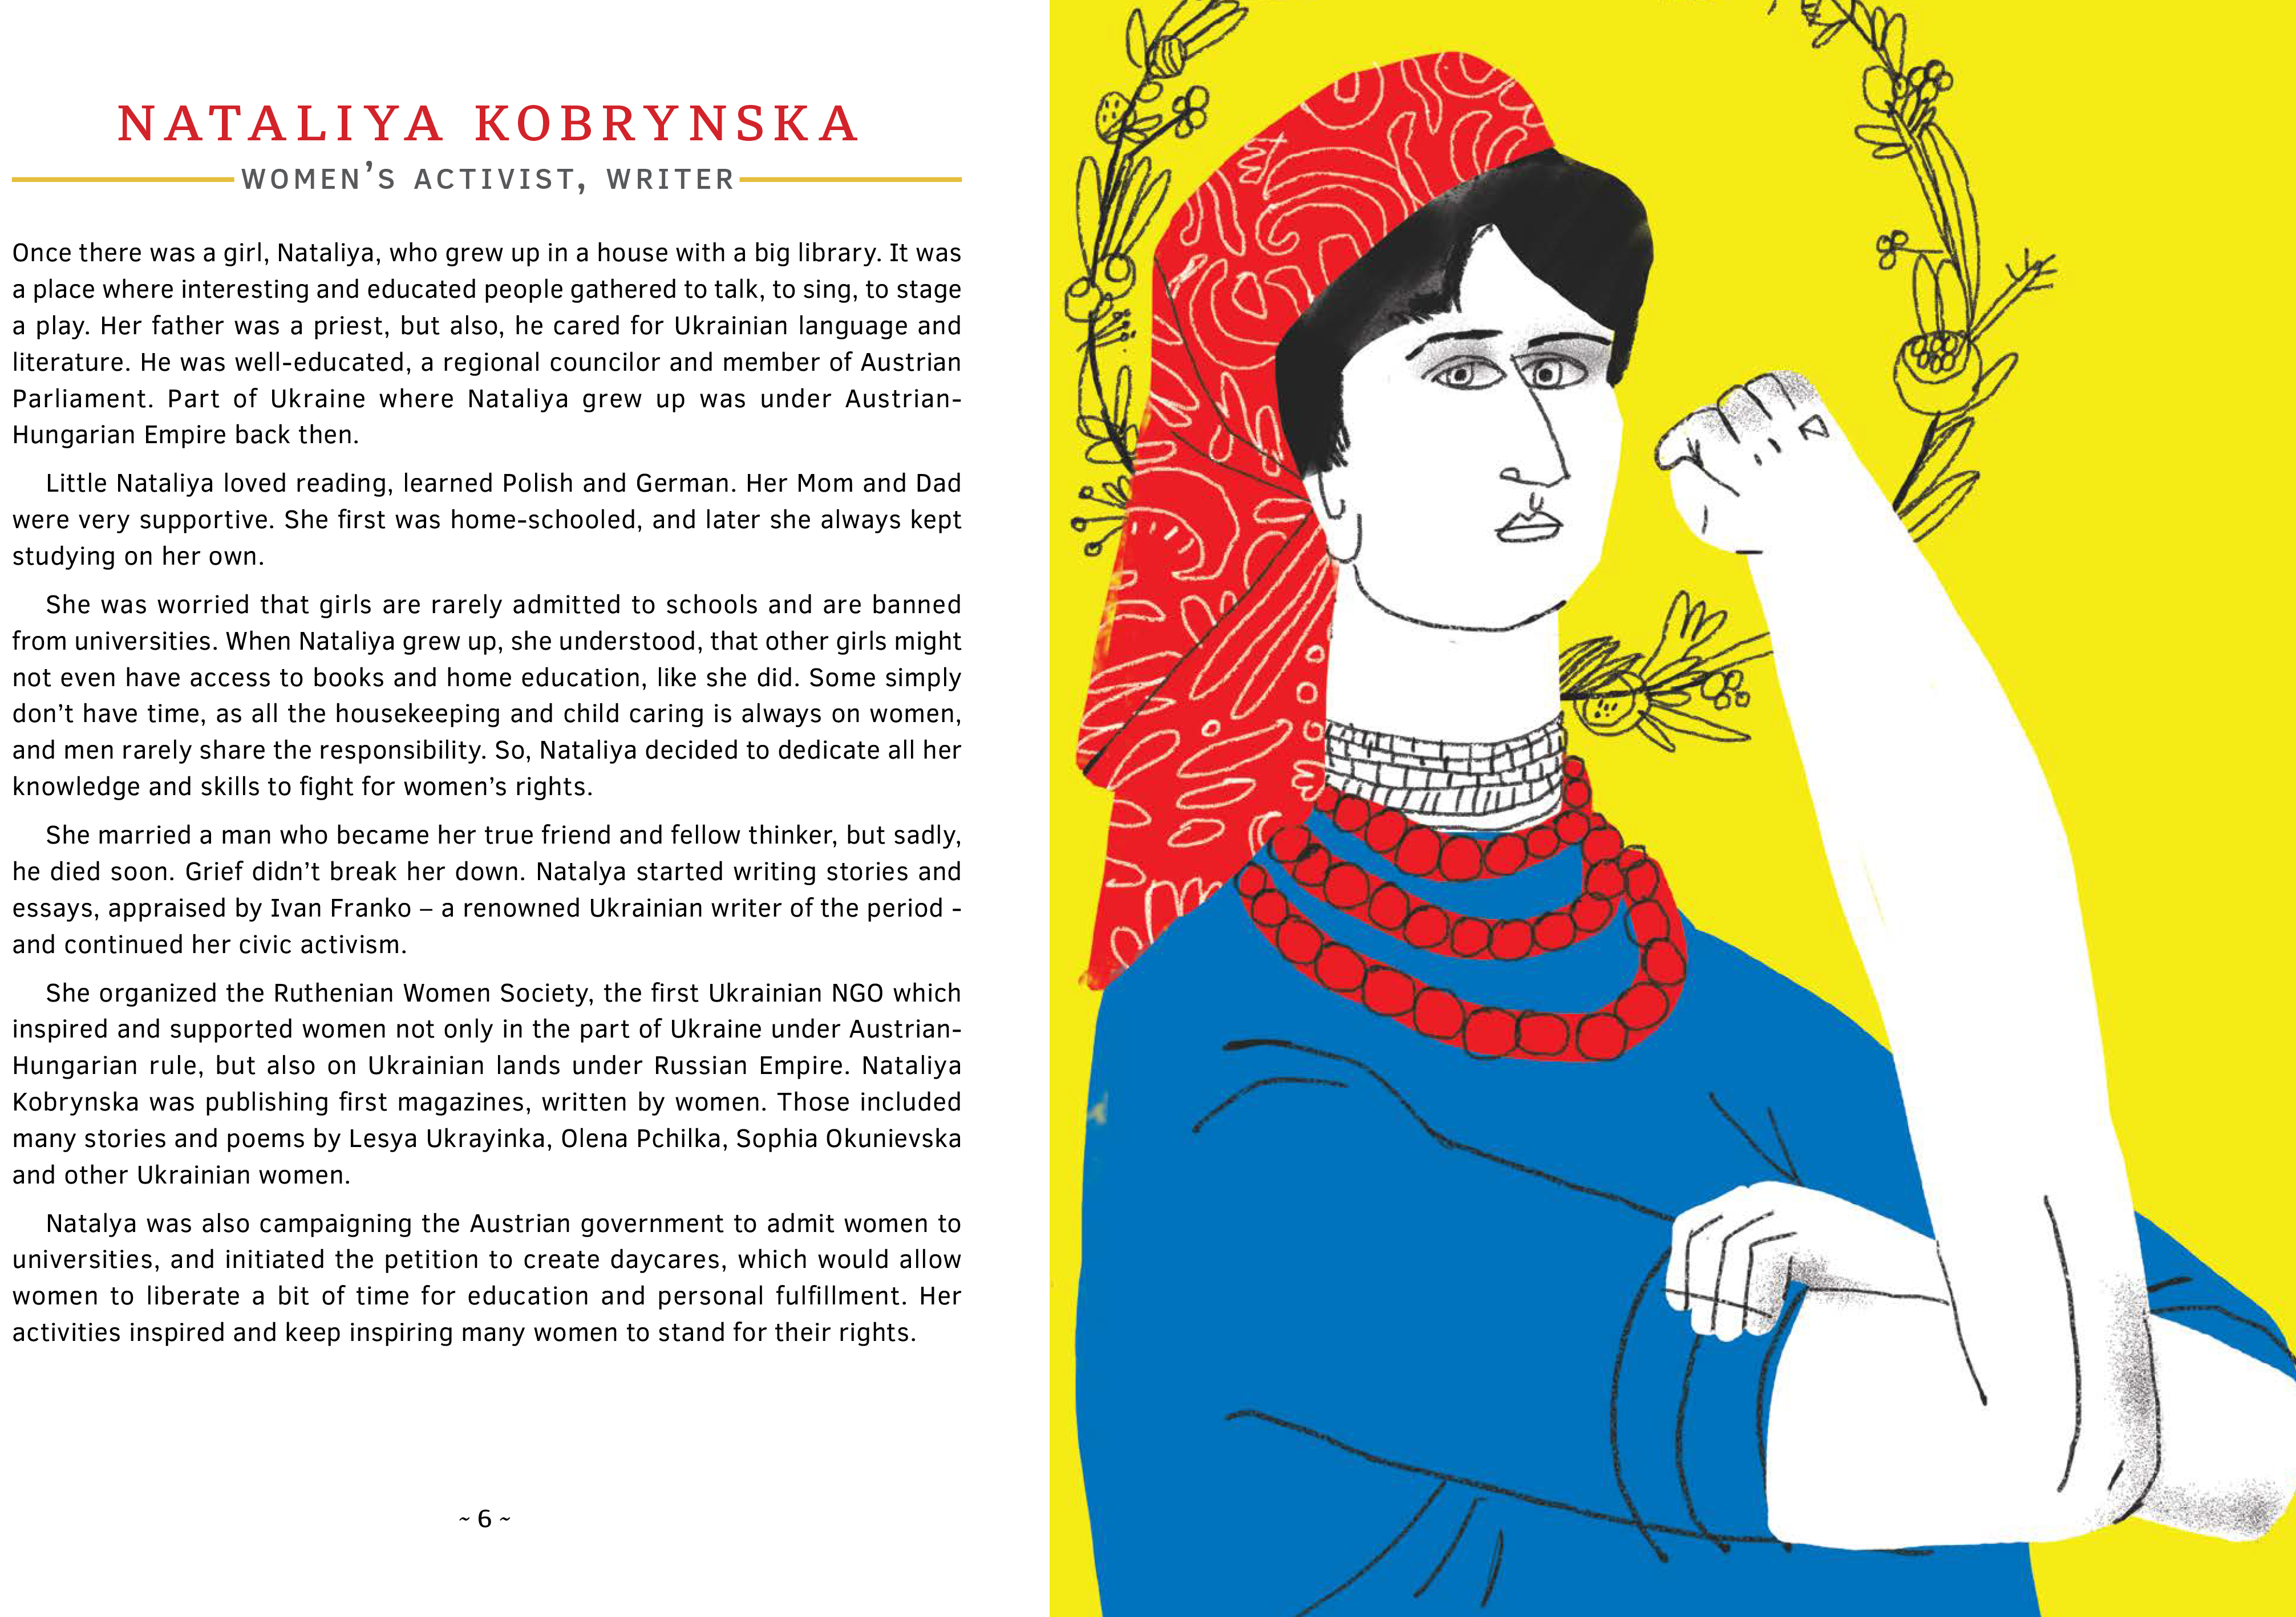 Text and illustration for Nataliya Kobrynska